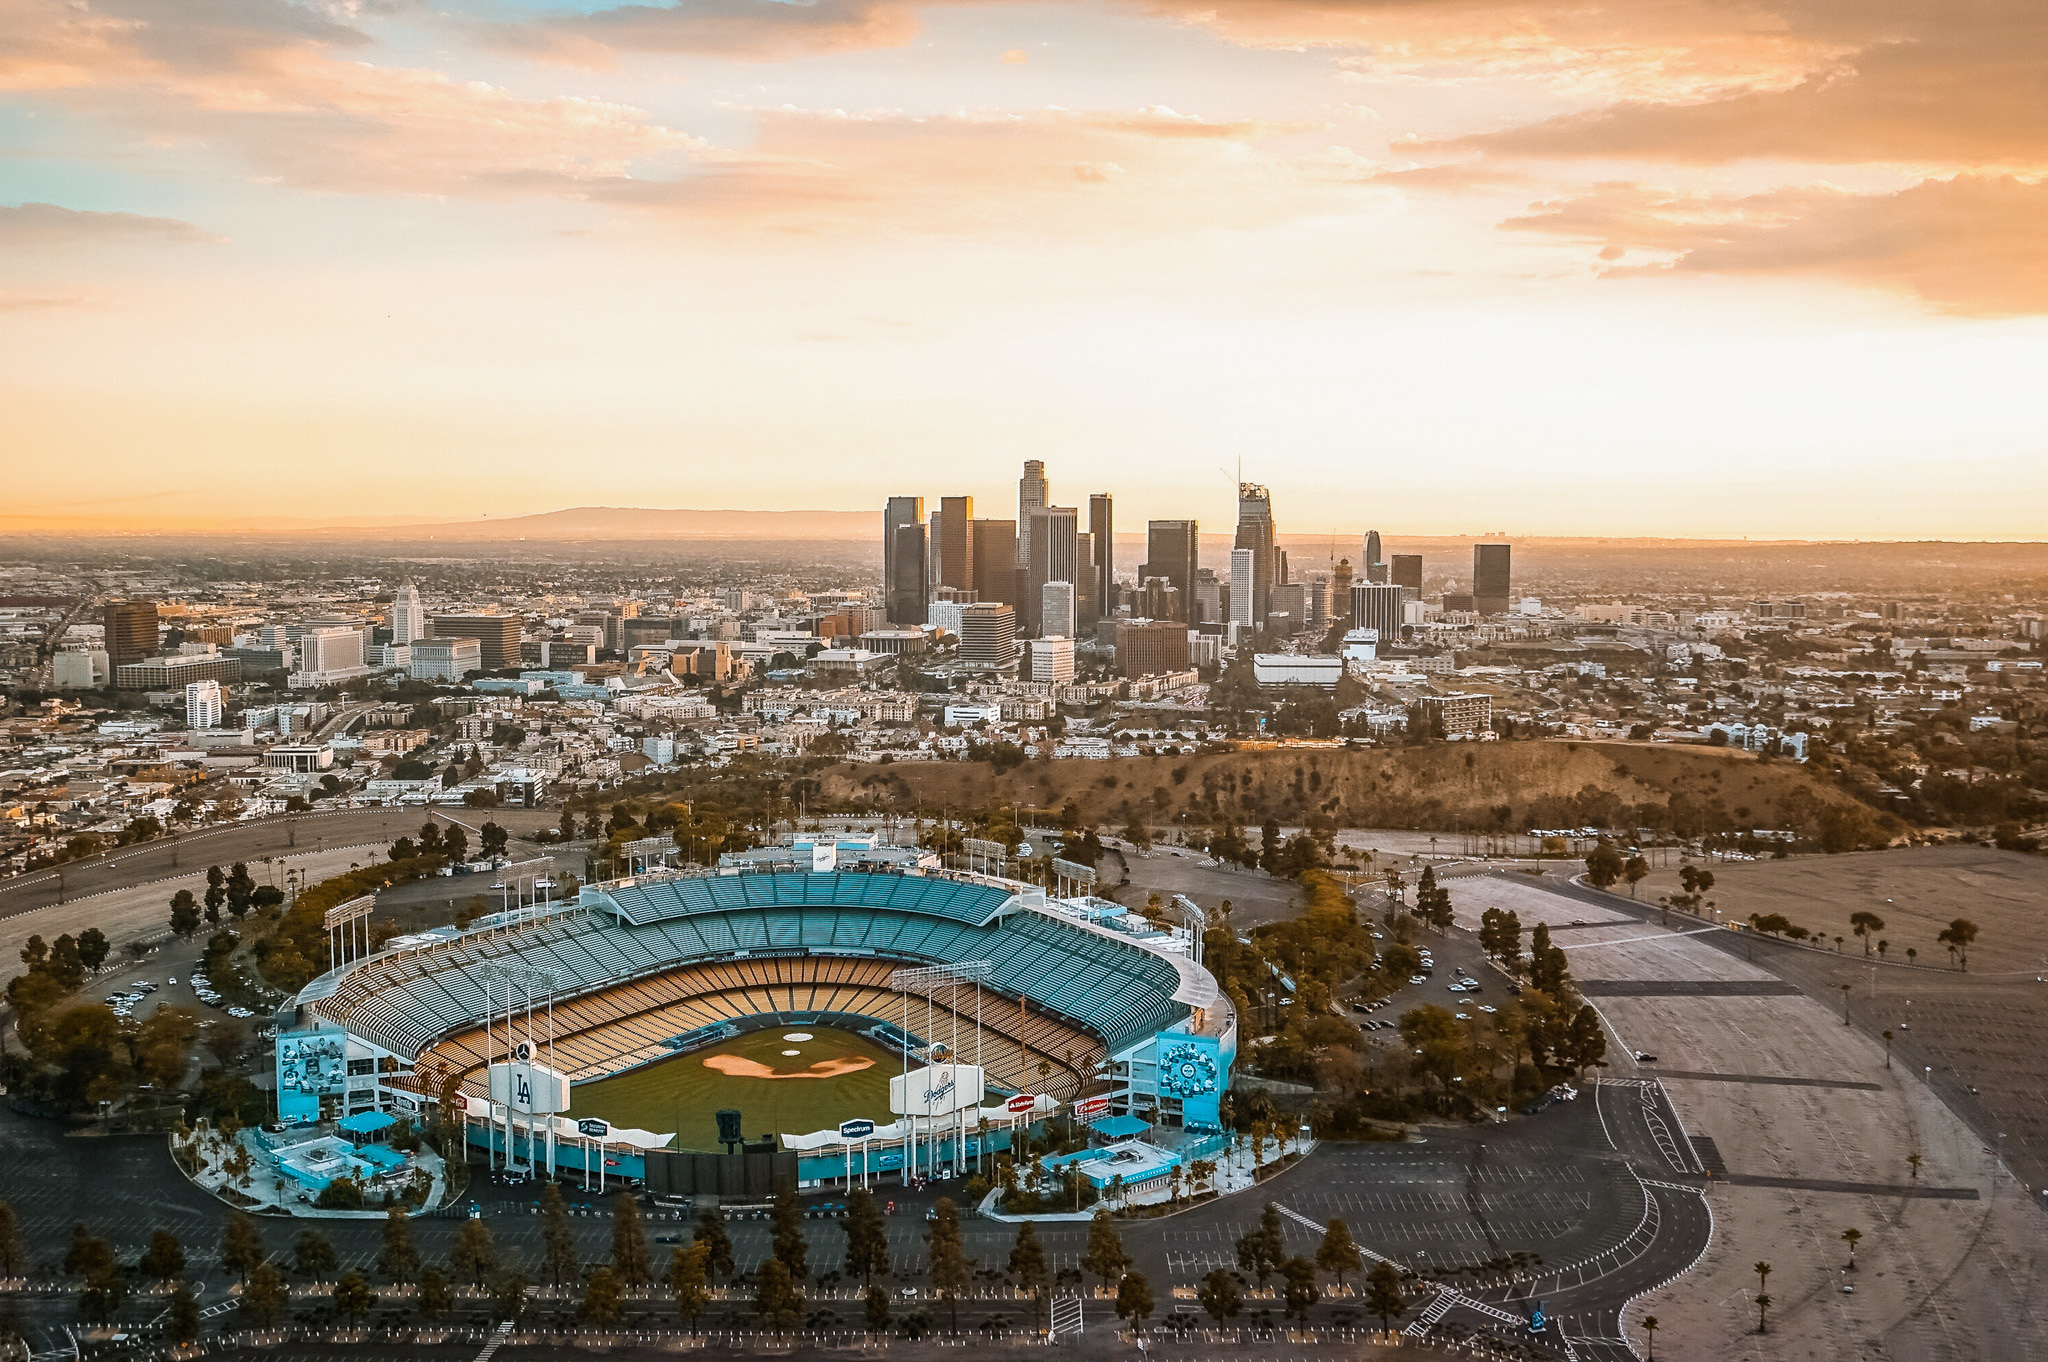 Where to dine and drink near Dodger Stadium